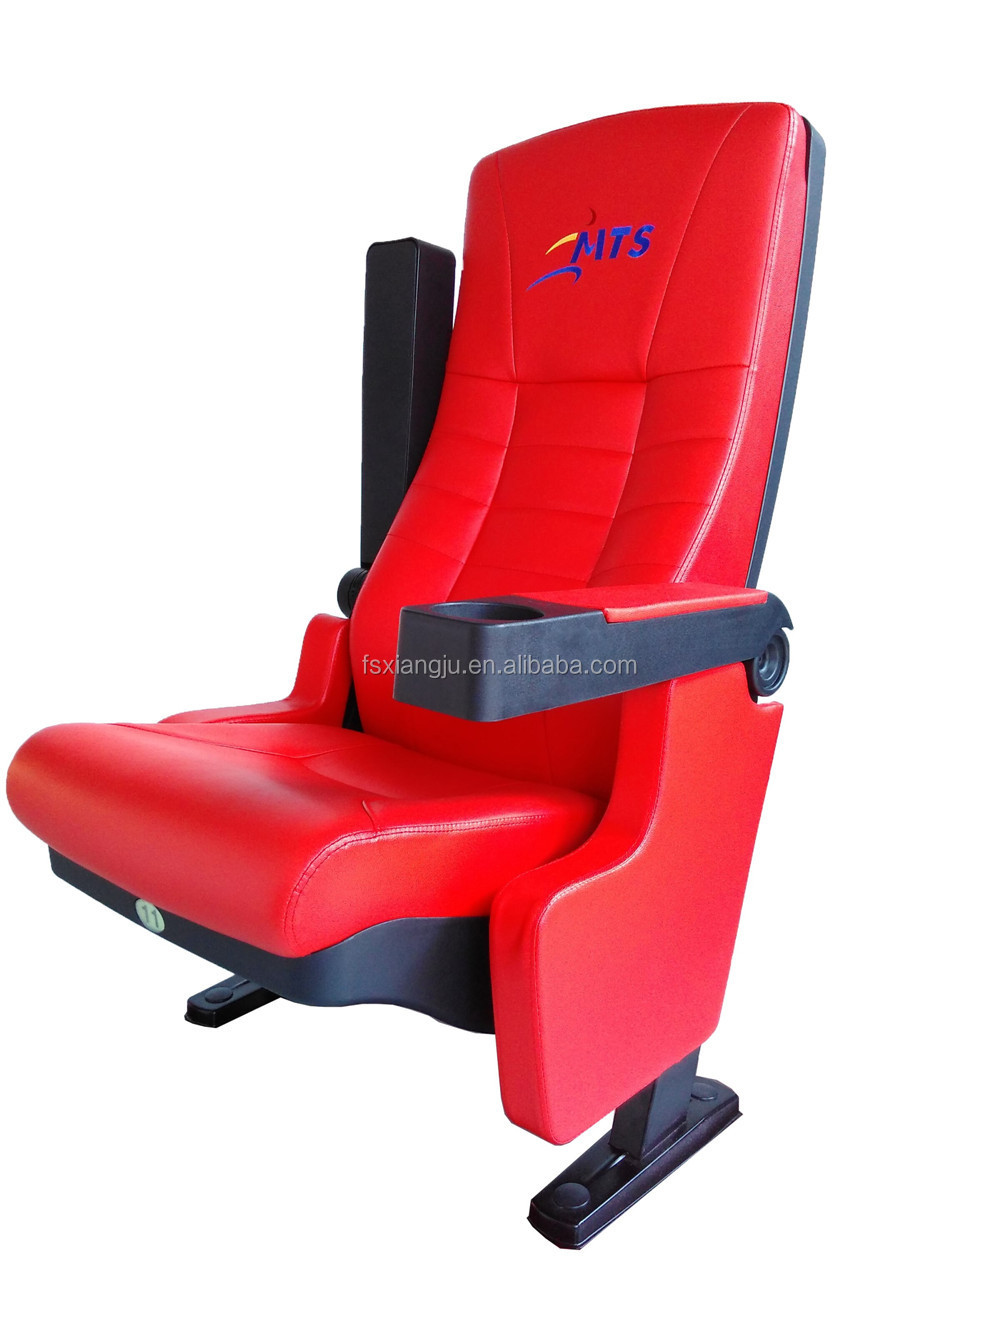 Good Quality Movie Theater Seat For Sale Cinema Chairs Prices Buy Cinema Ch